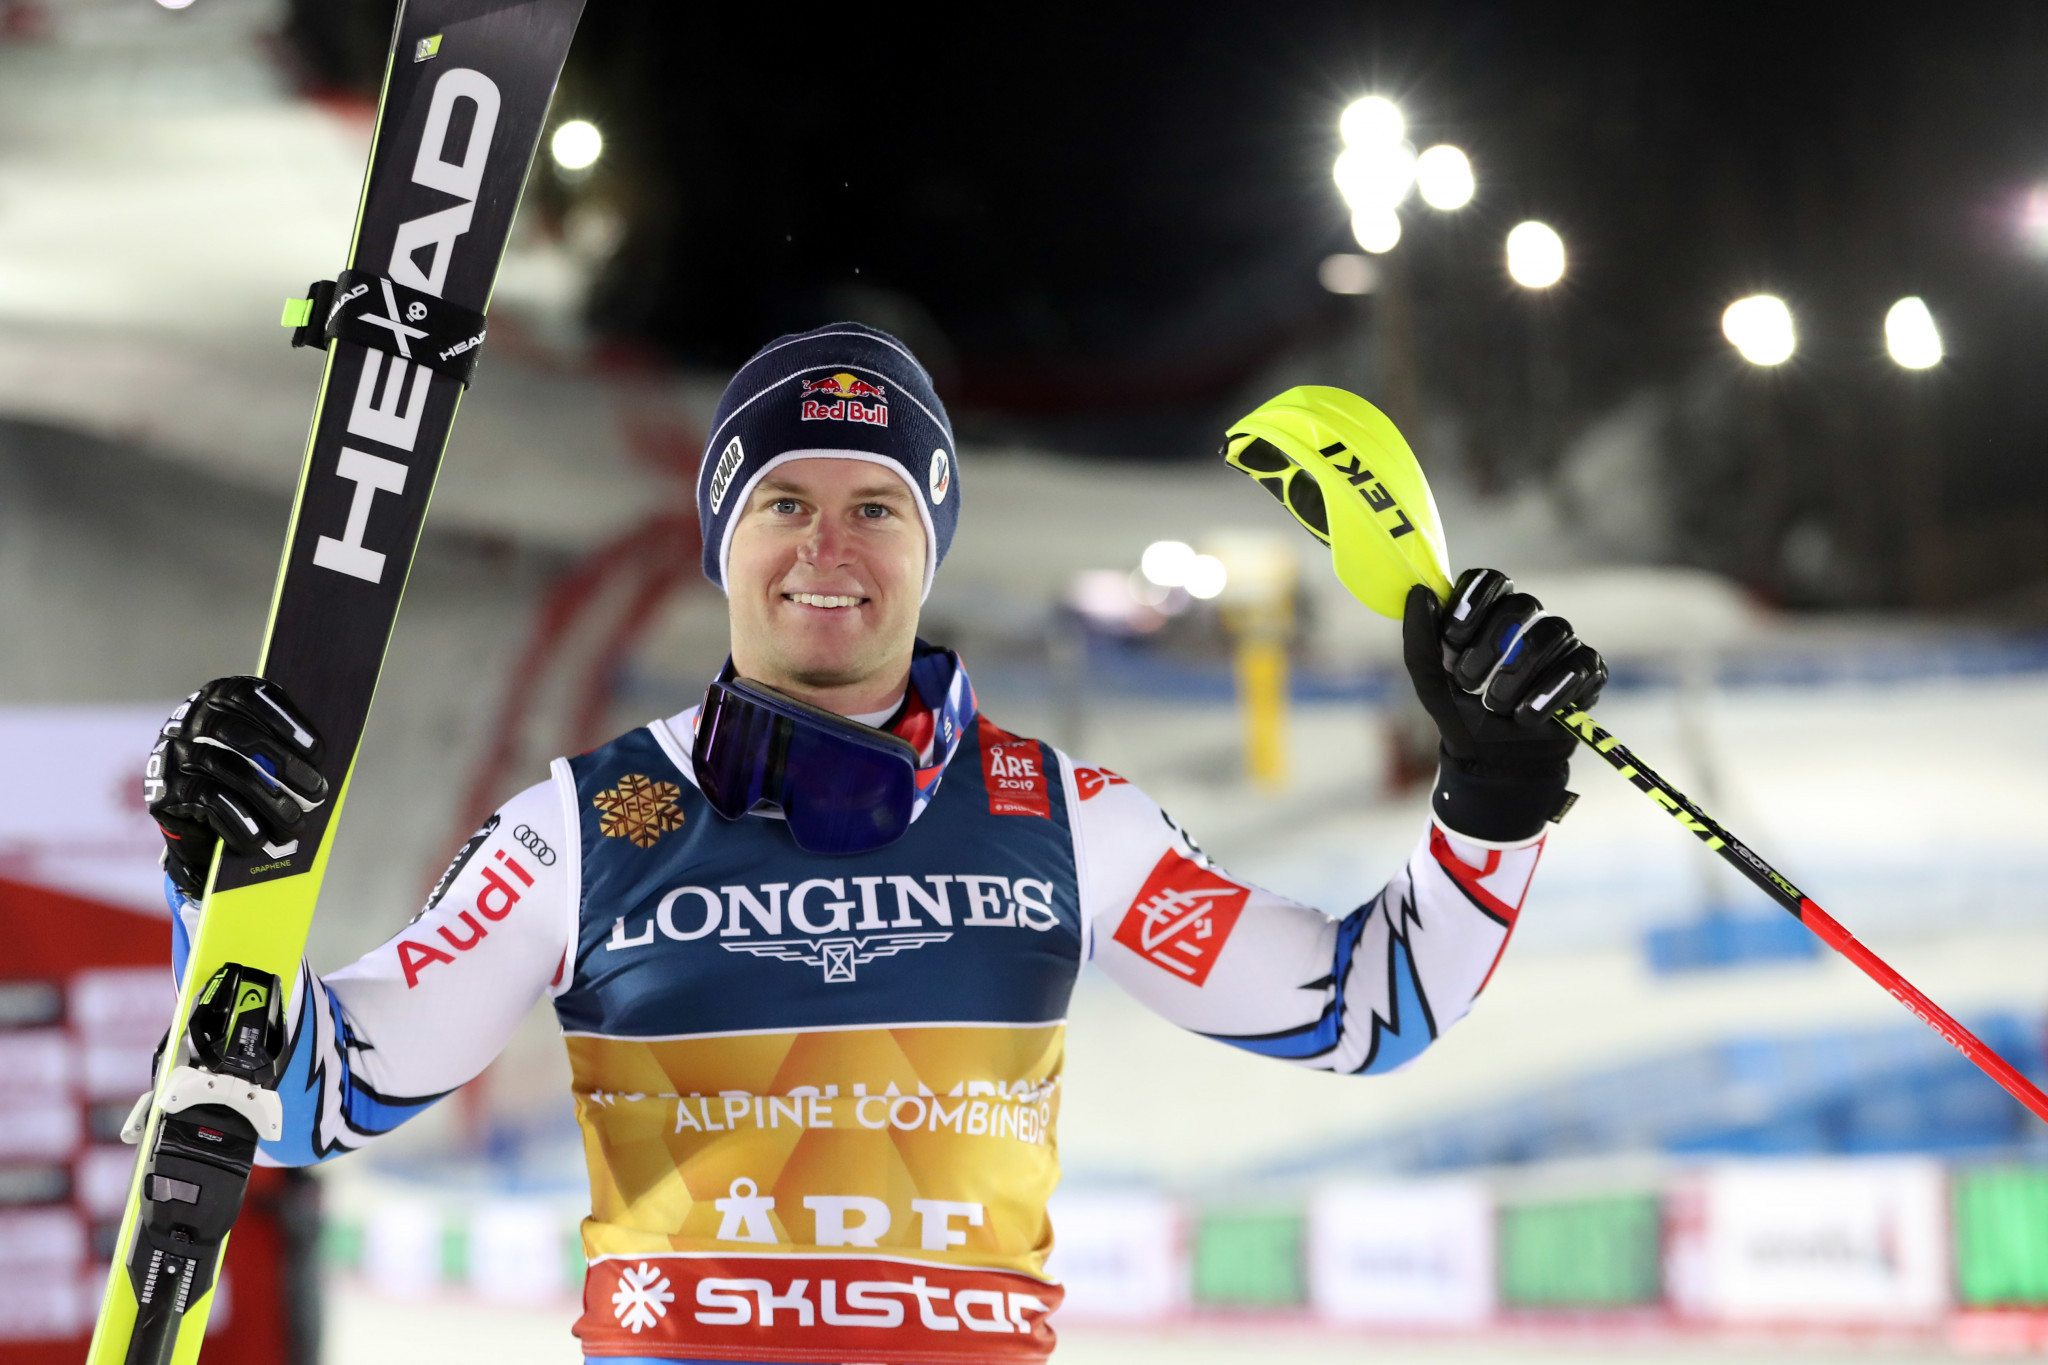 Pinturault uses slalom skill to win Alpine combined title at Alpine Skiing World Championships